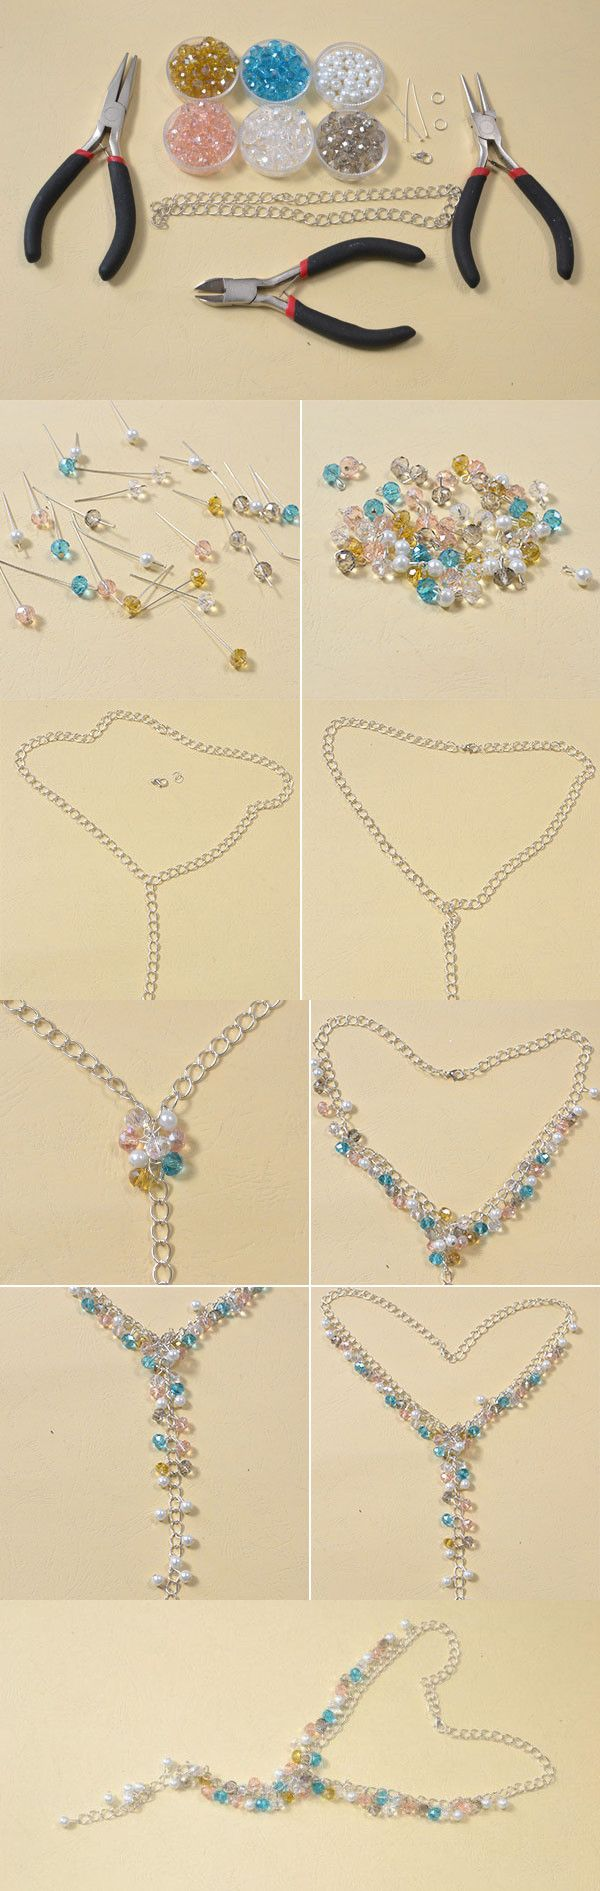 Tutorial on How to Make Valentine's Day Chain Necklaces with Glass Beads from LC.Pandahall.com